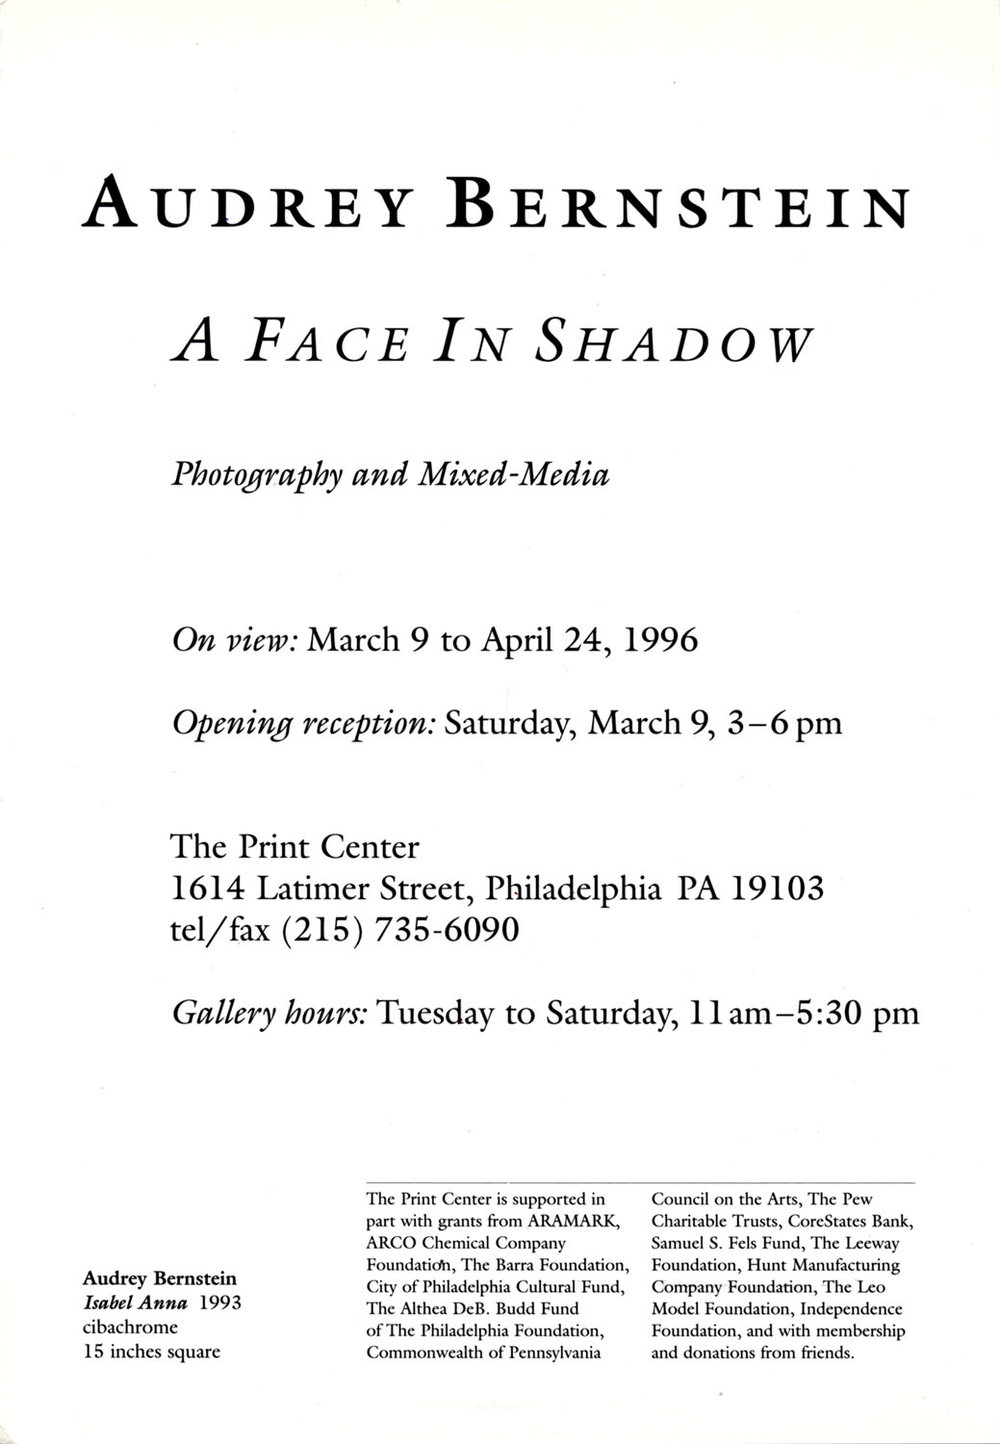 ABernstein_Promo_A-Face-in-Shadow061.jpg